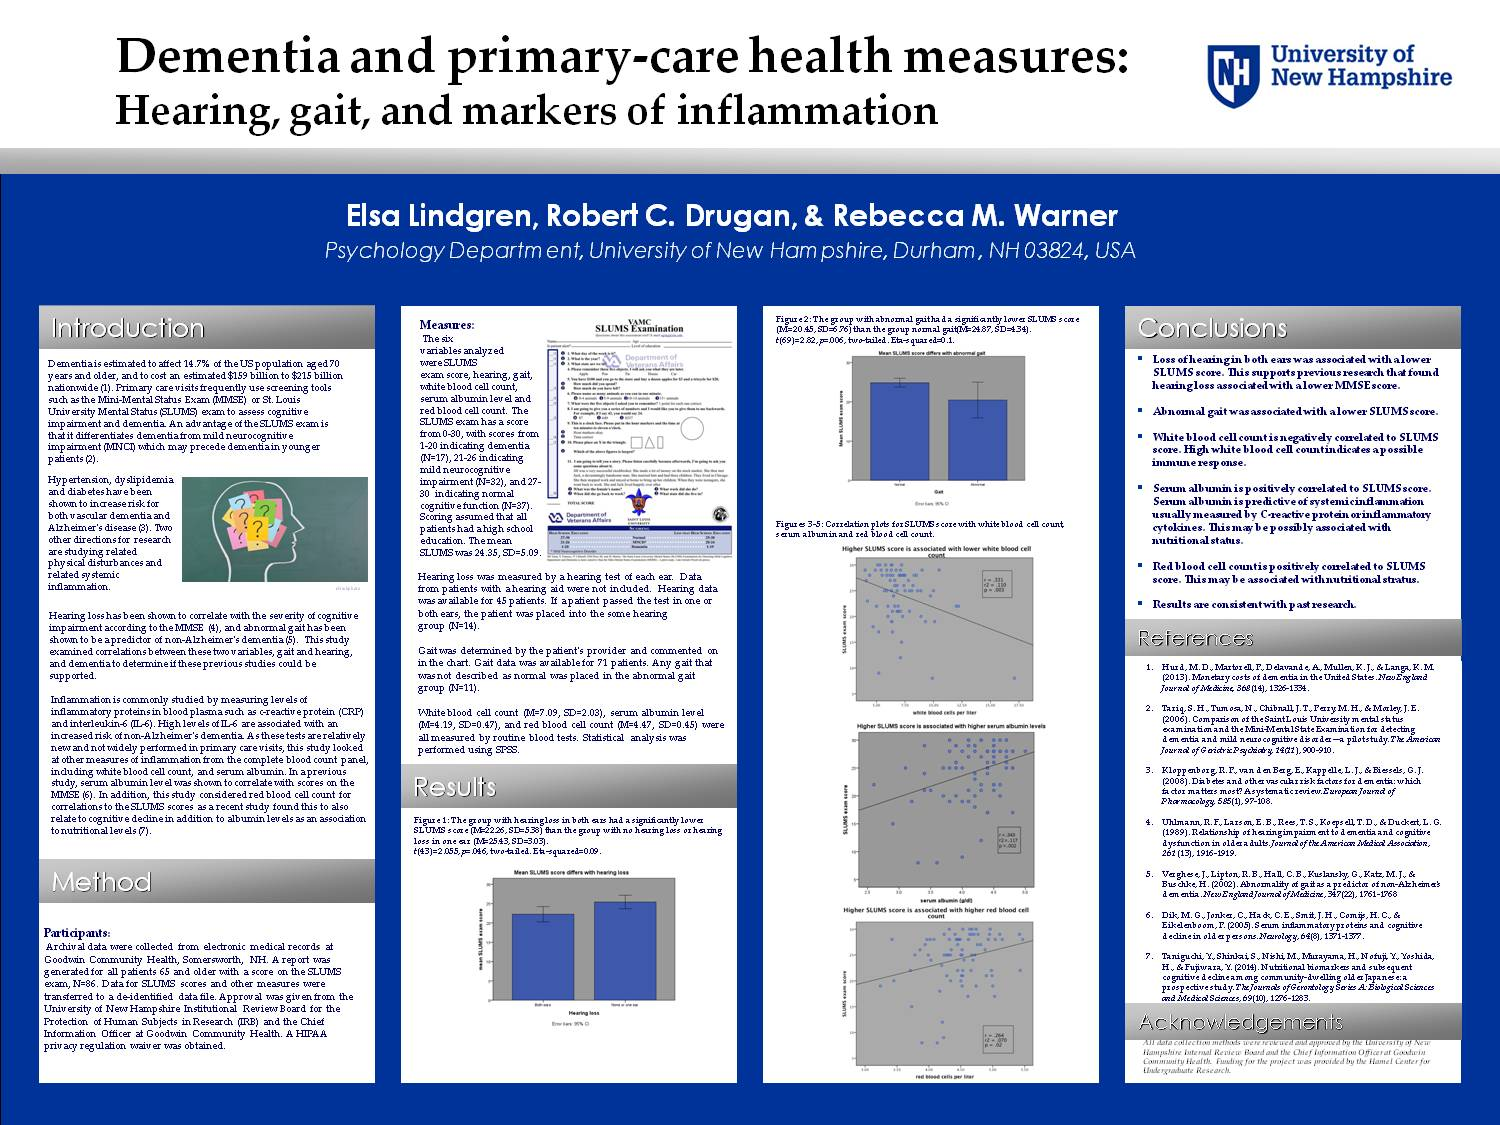 Dementia And Primary-Care Health Measures: Hearing, Gait And Markers Of Inflammation by eru43